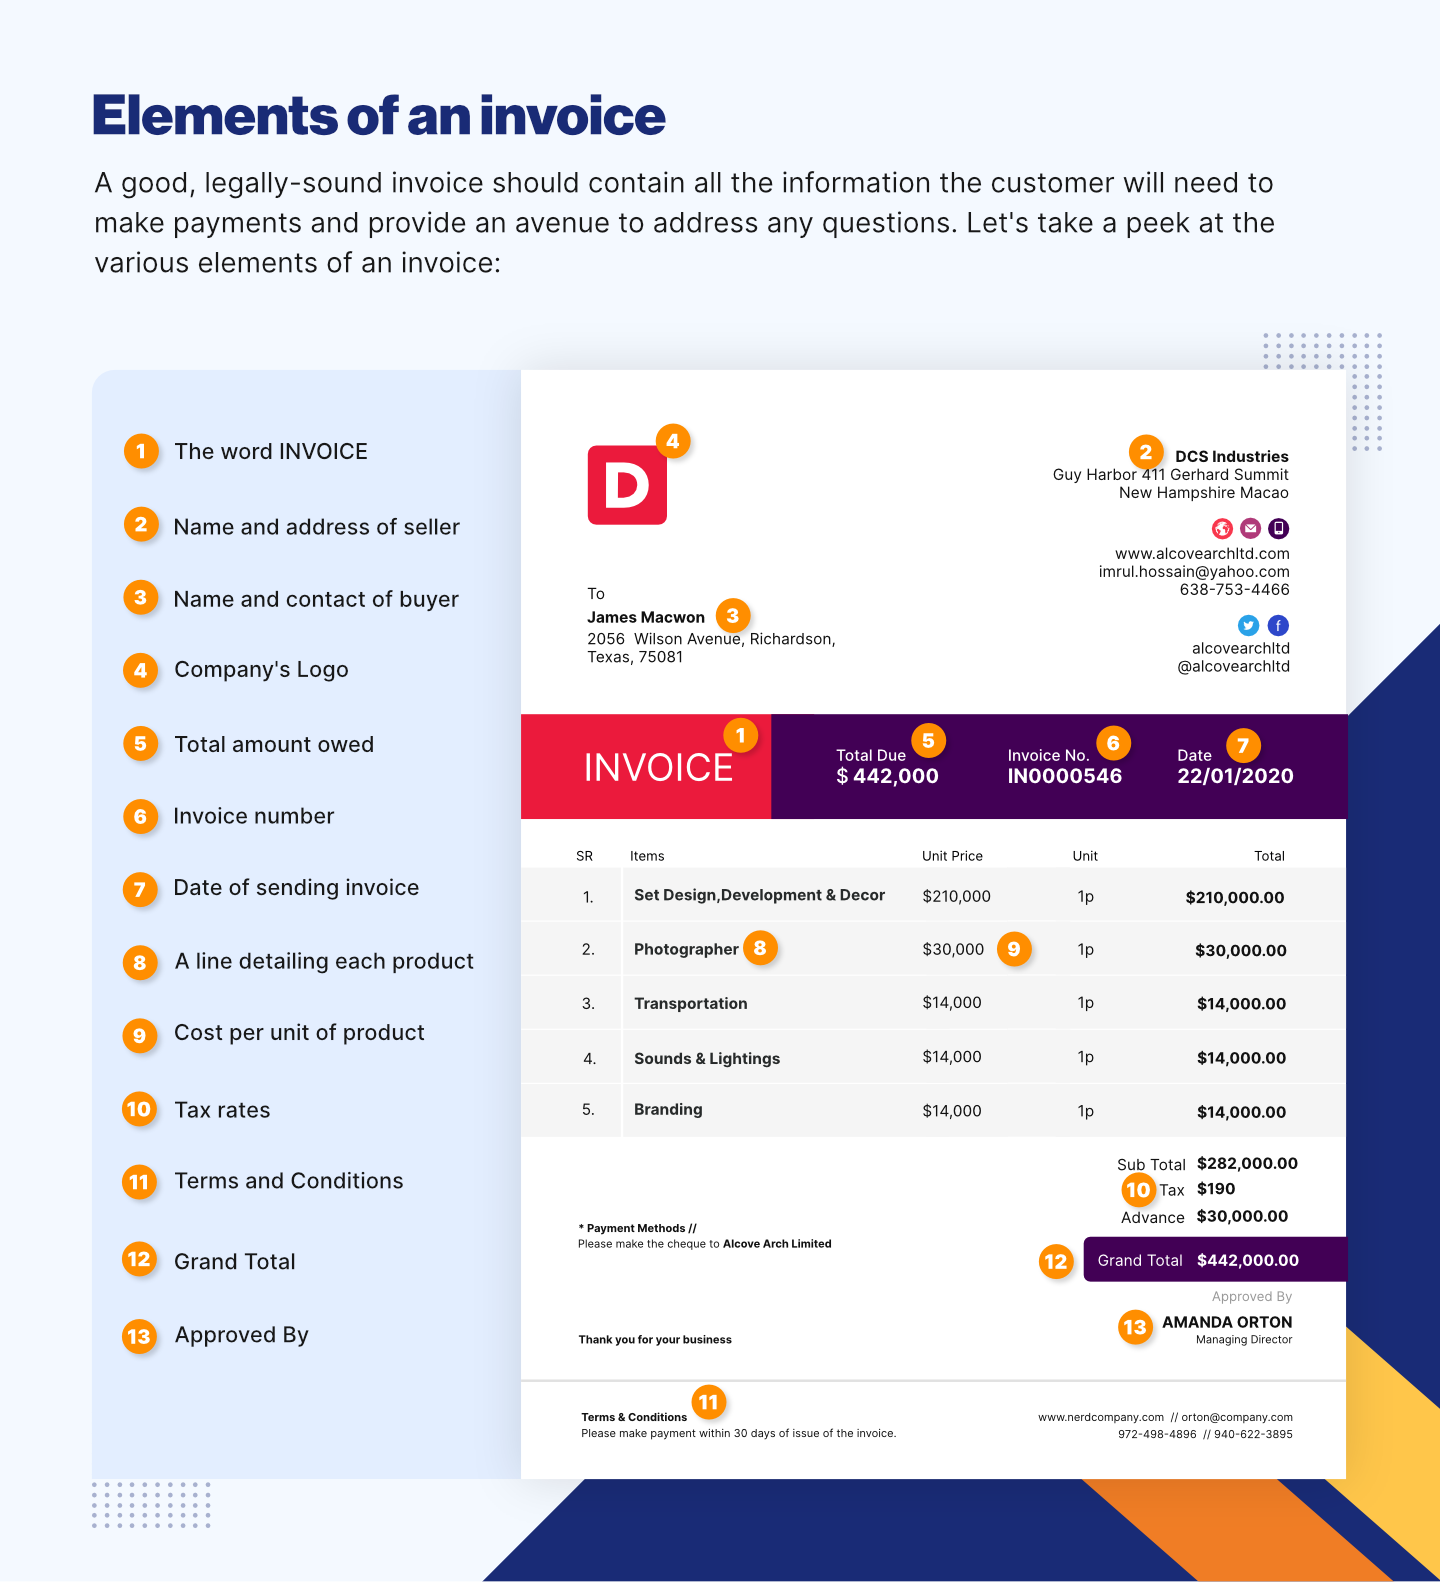 Elements of an Invoice - What is an Invoice